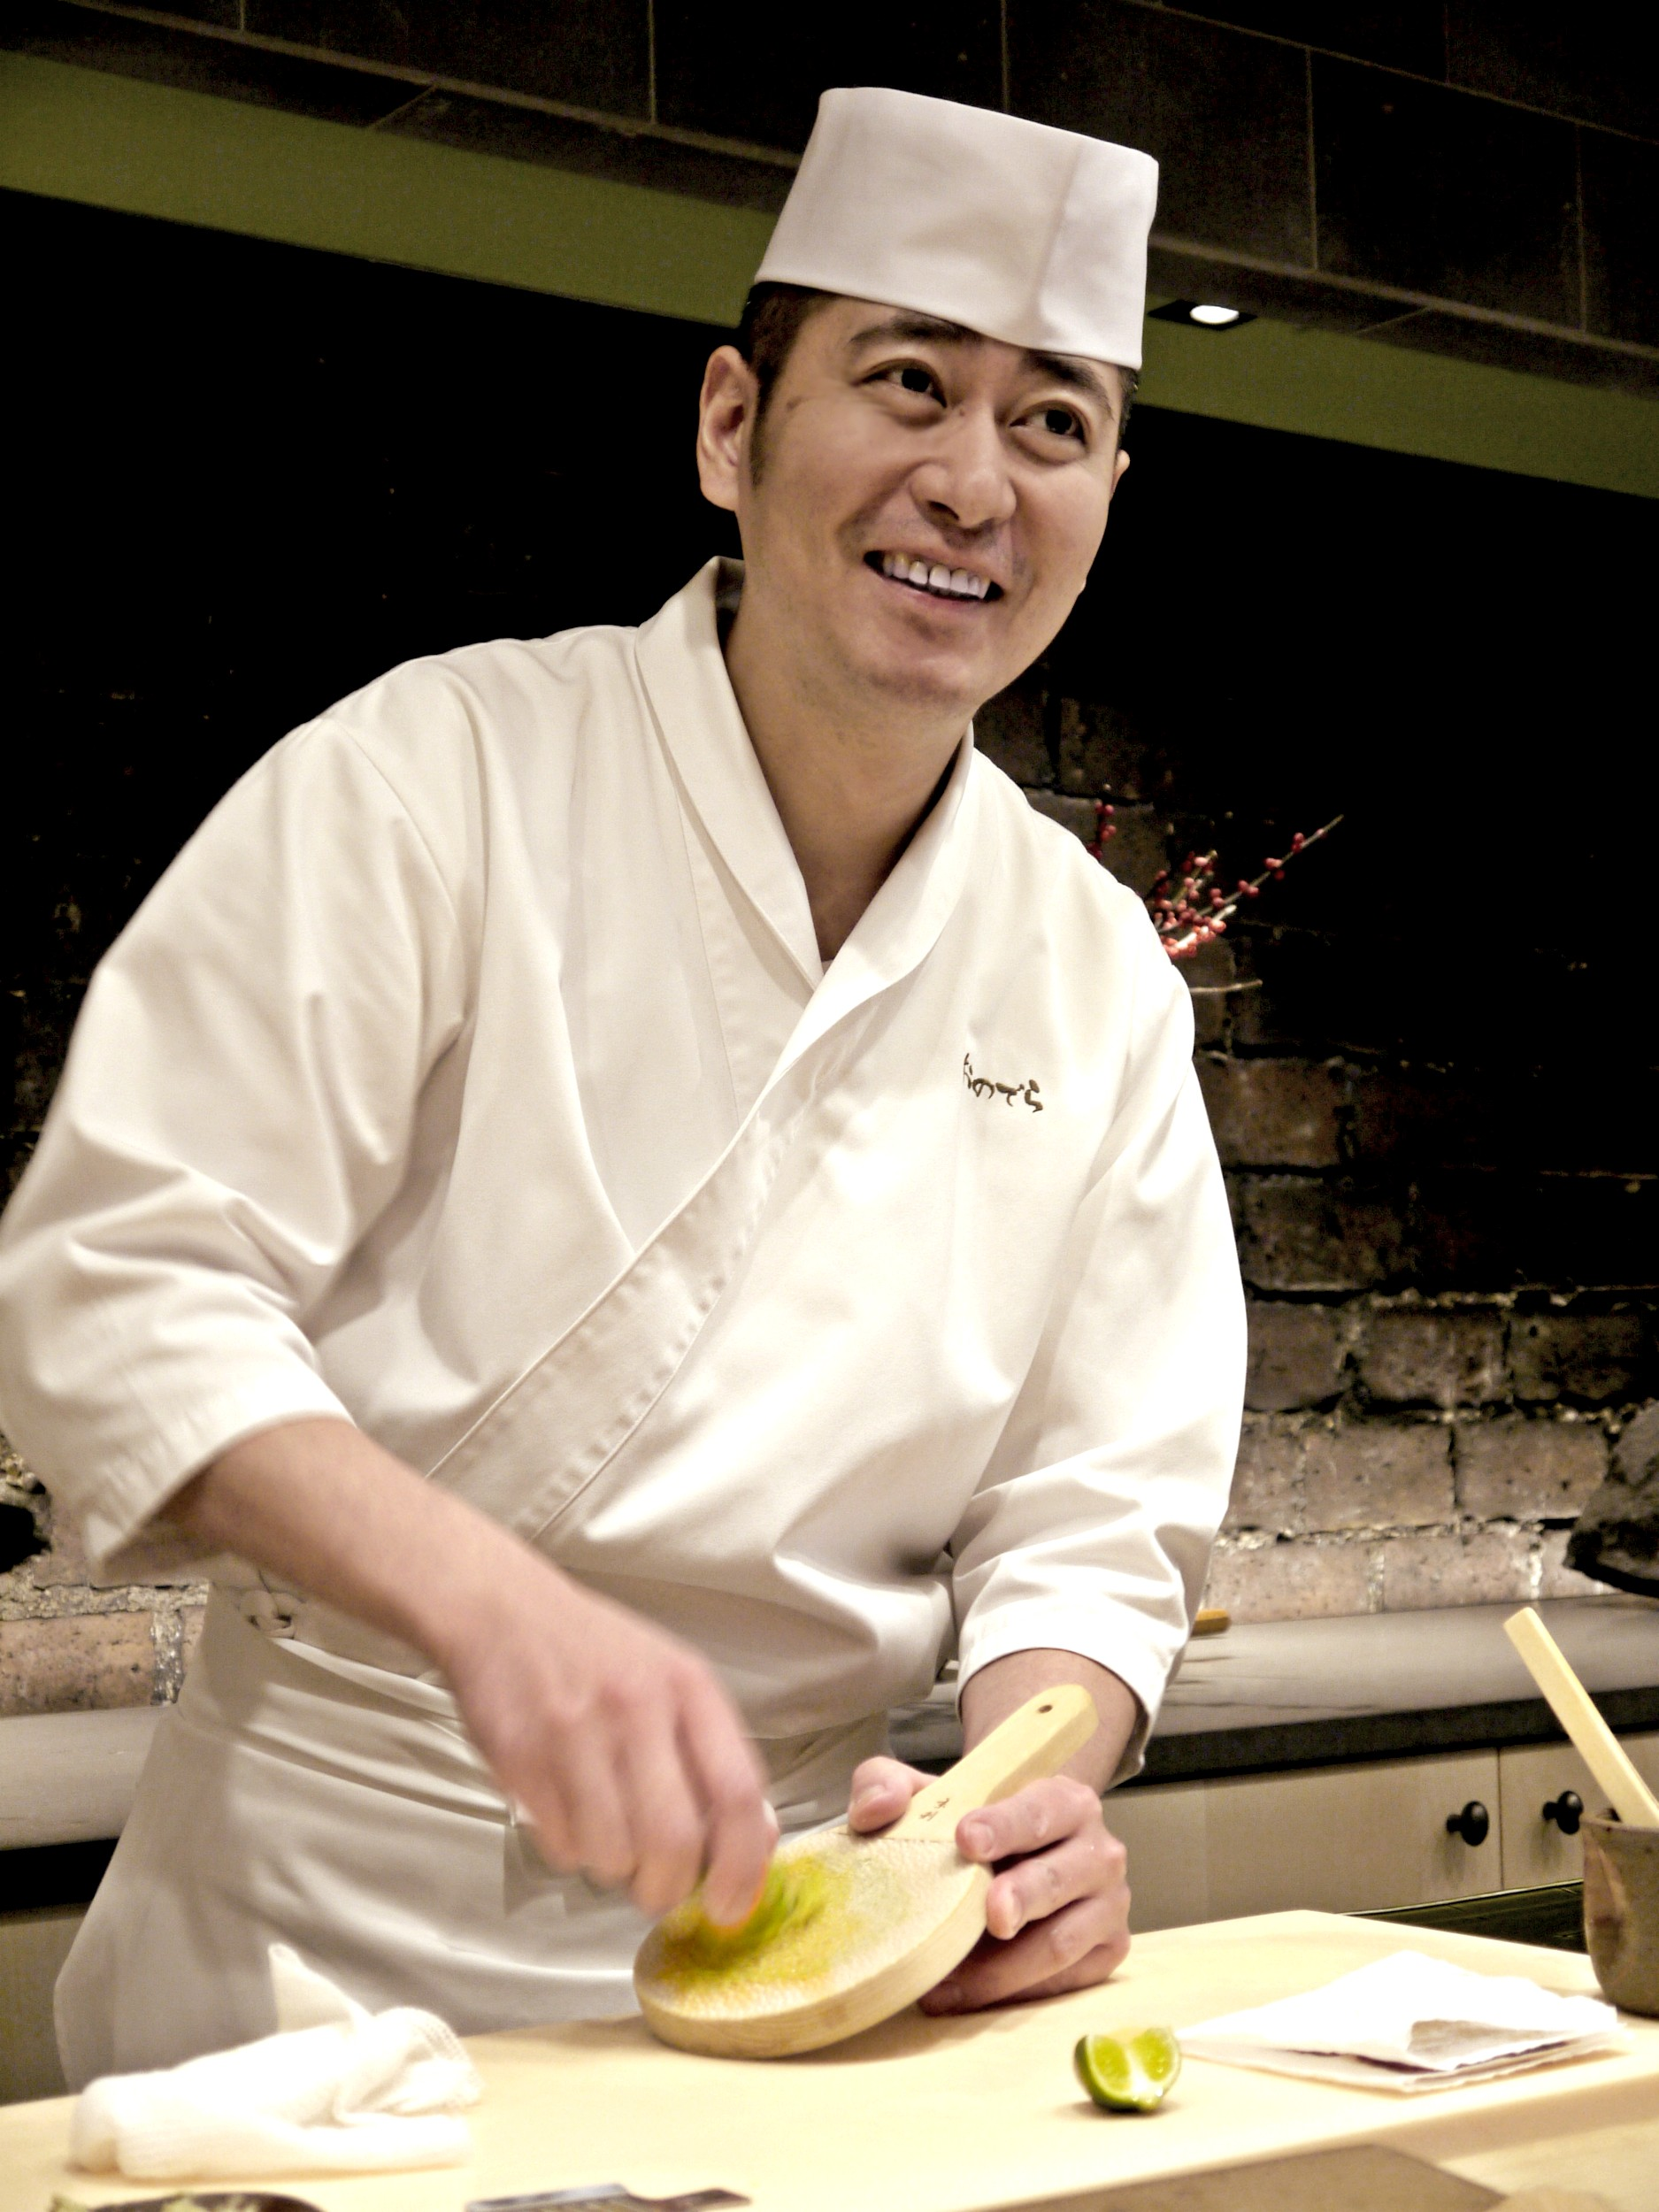 Sushi ginza onodera the perfect sushi experience in paris karin shibata through the - Recherche chef de cuisine paris ...